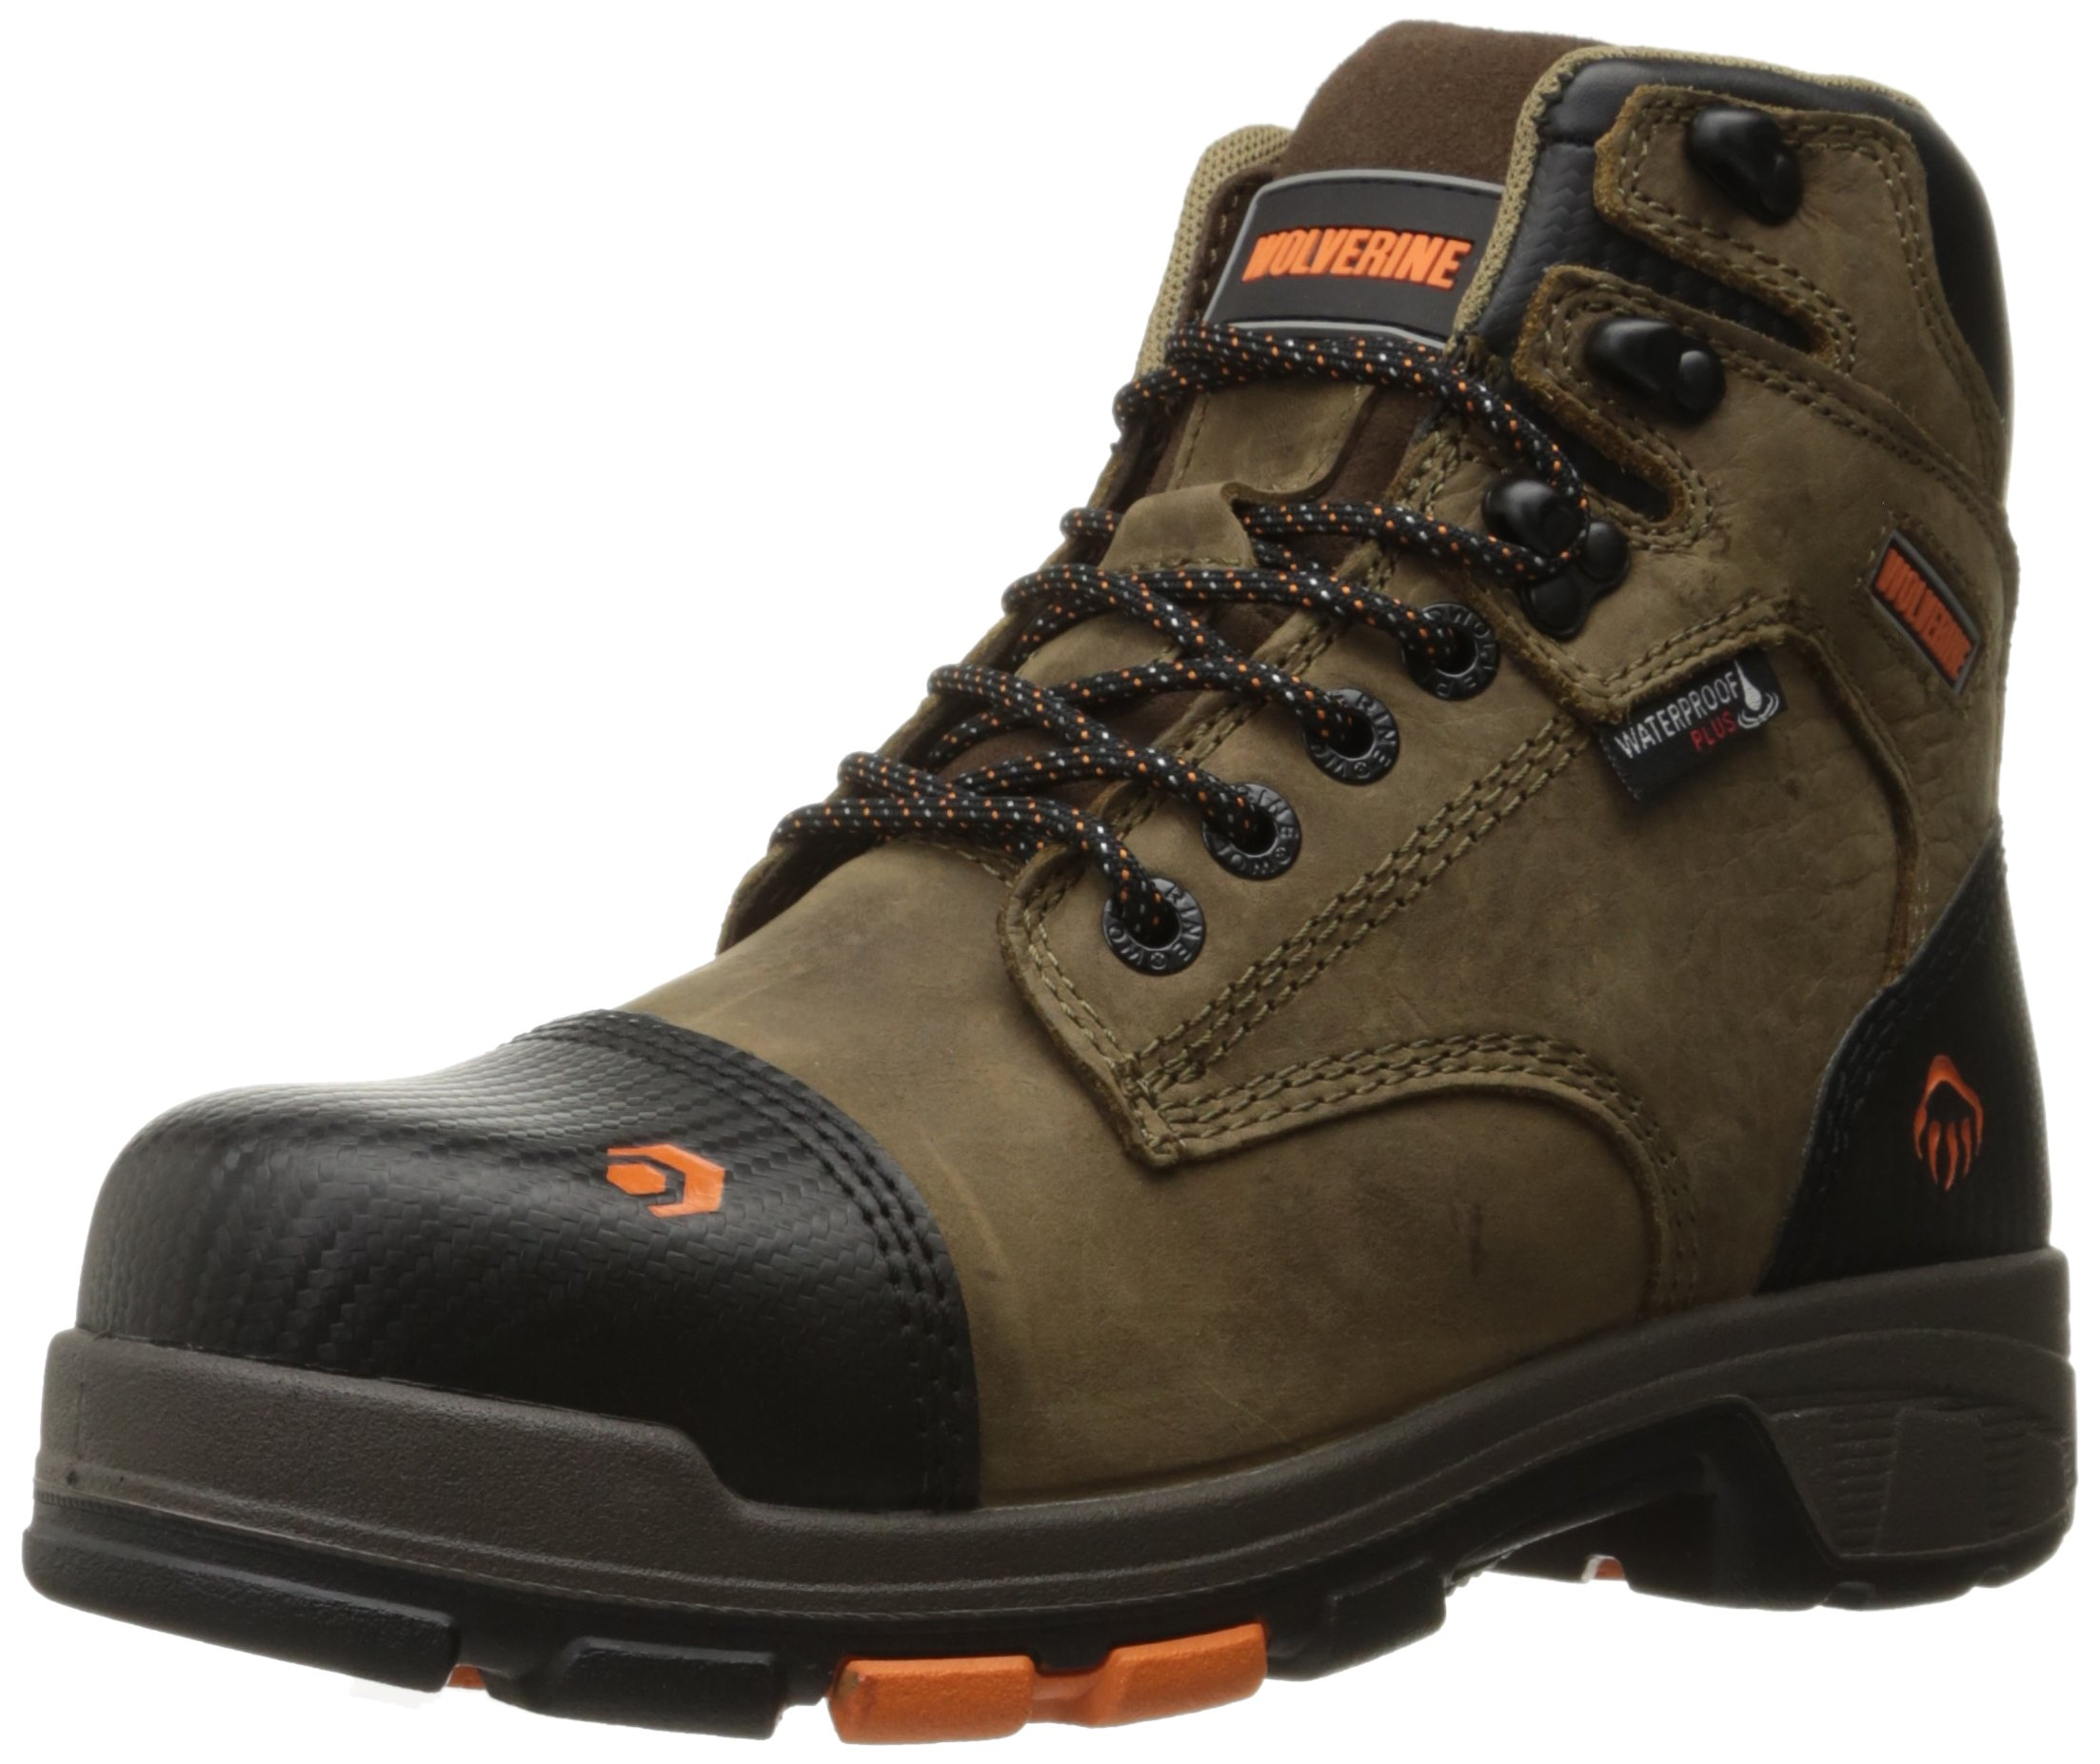 Wolverine Men's Blade LX Waterproof 6'' Comp Toe Work Boot, Chocolate Chip, 10.5 M US